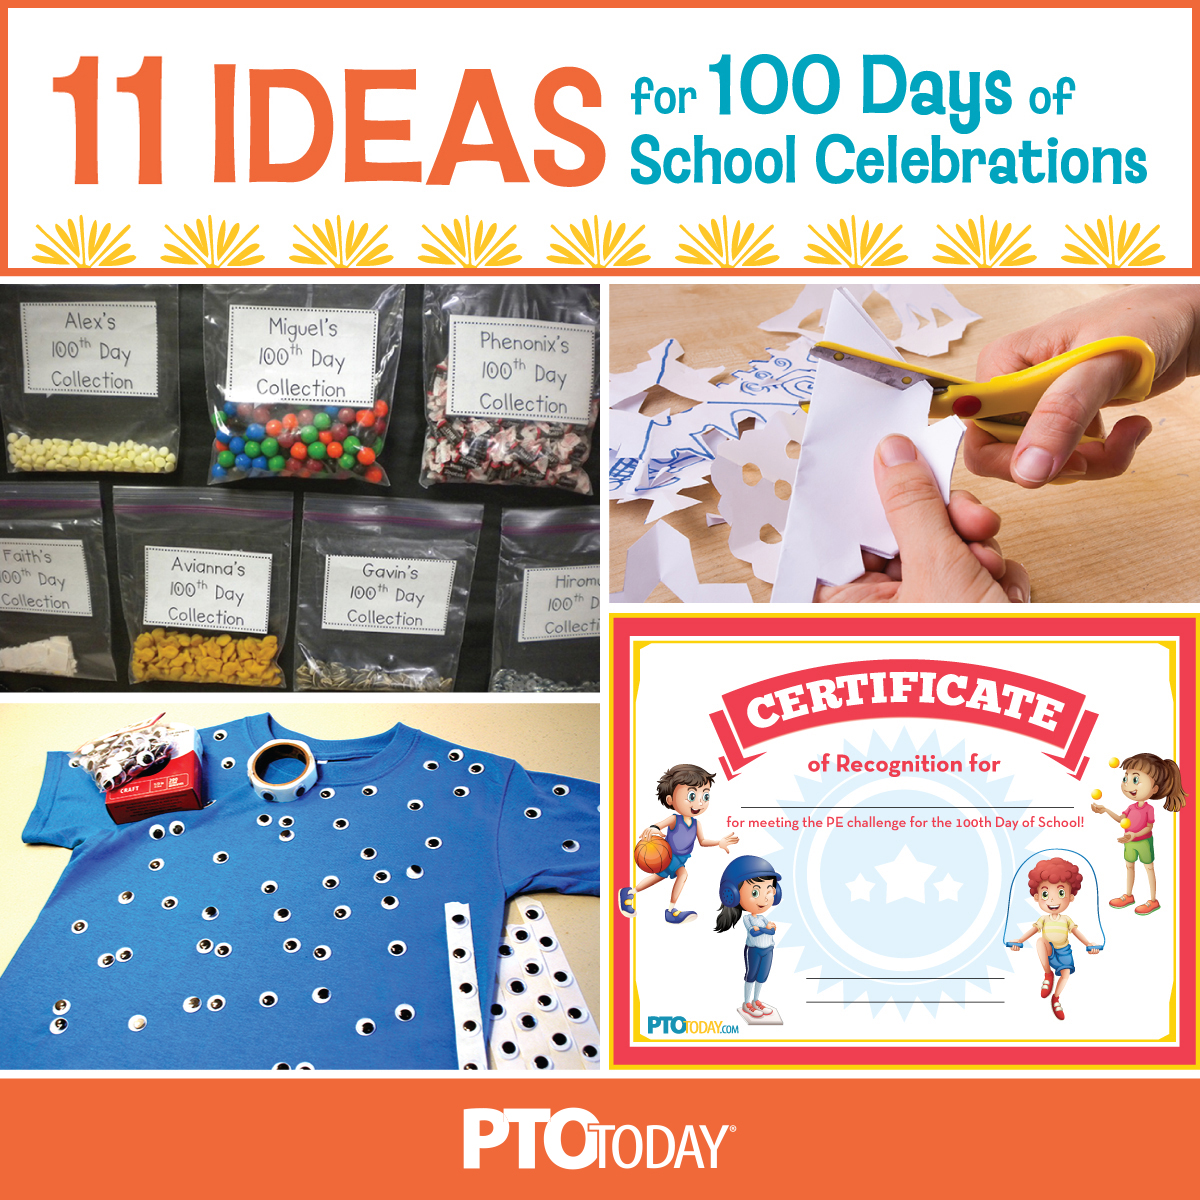 20 Ways To Mark the 20th Day of School   PTO Today